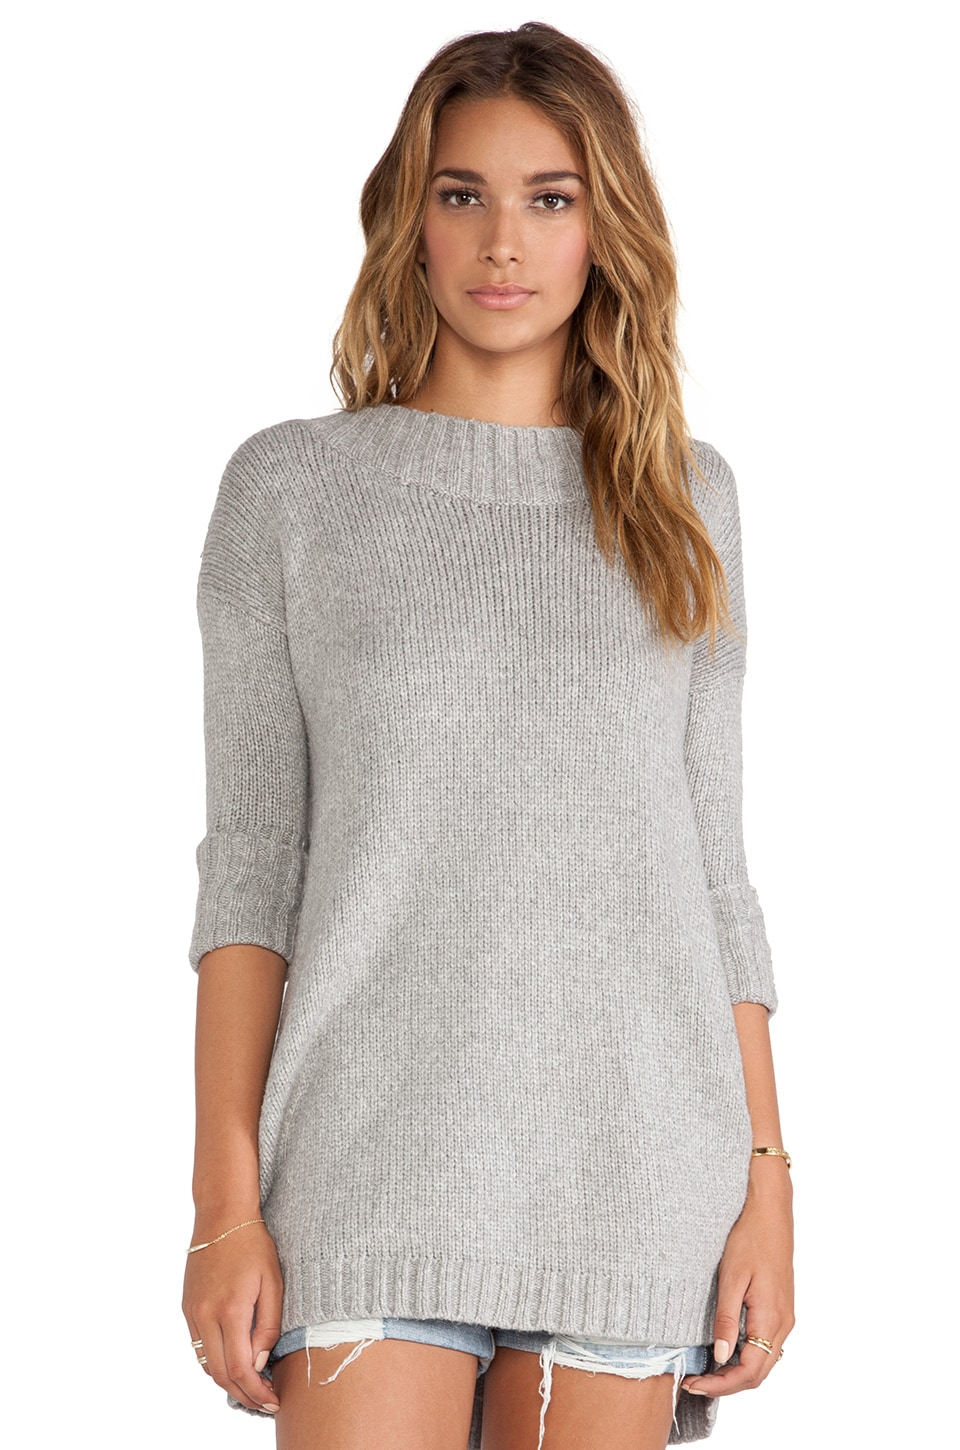 Free People Tricot Pullover in Light Grey | REVOLVE